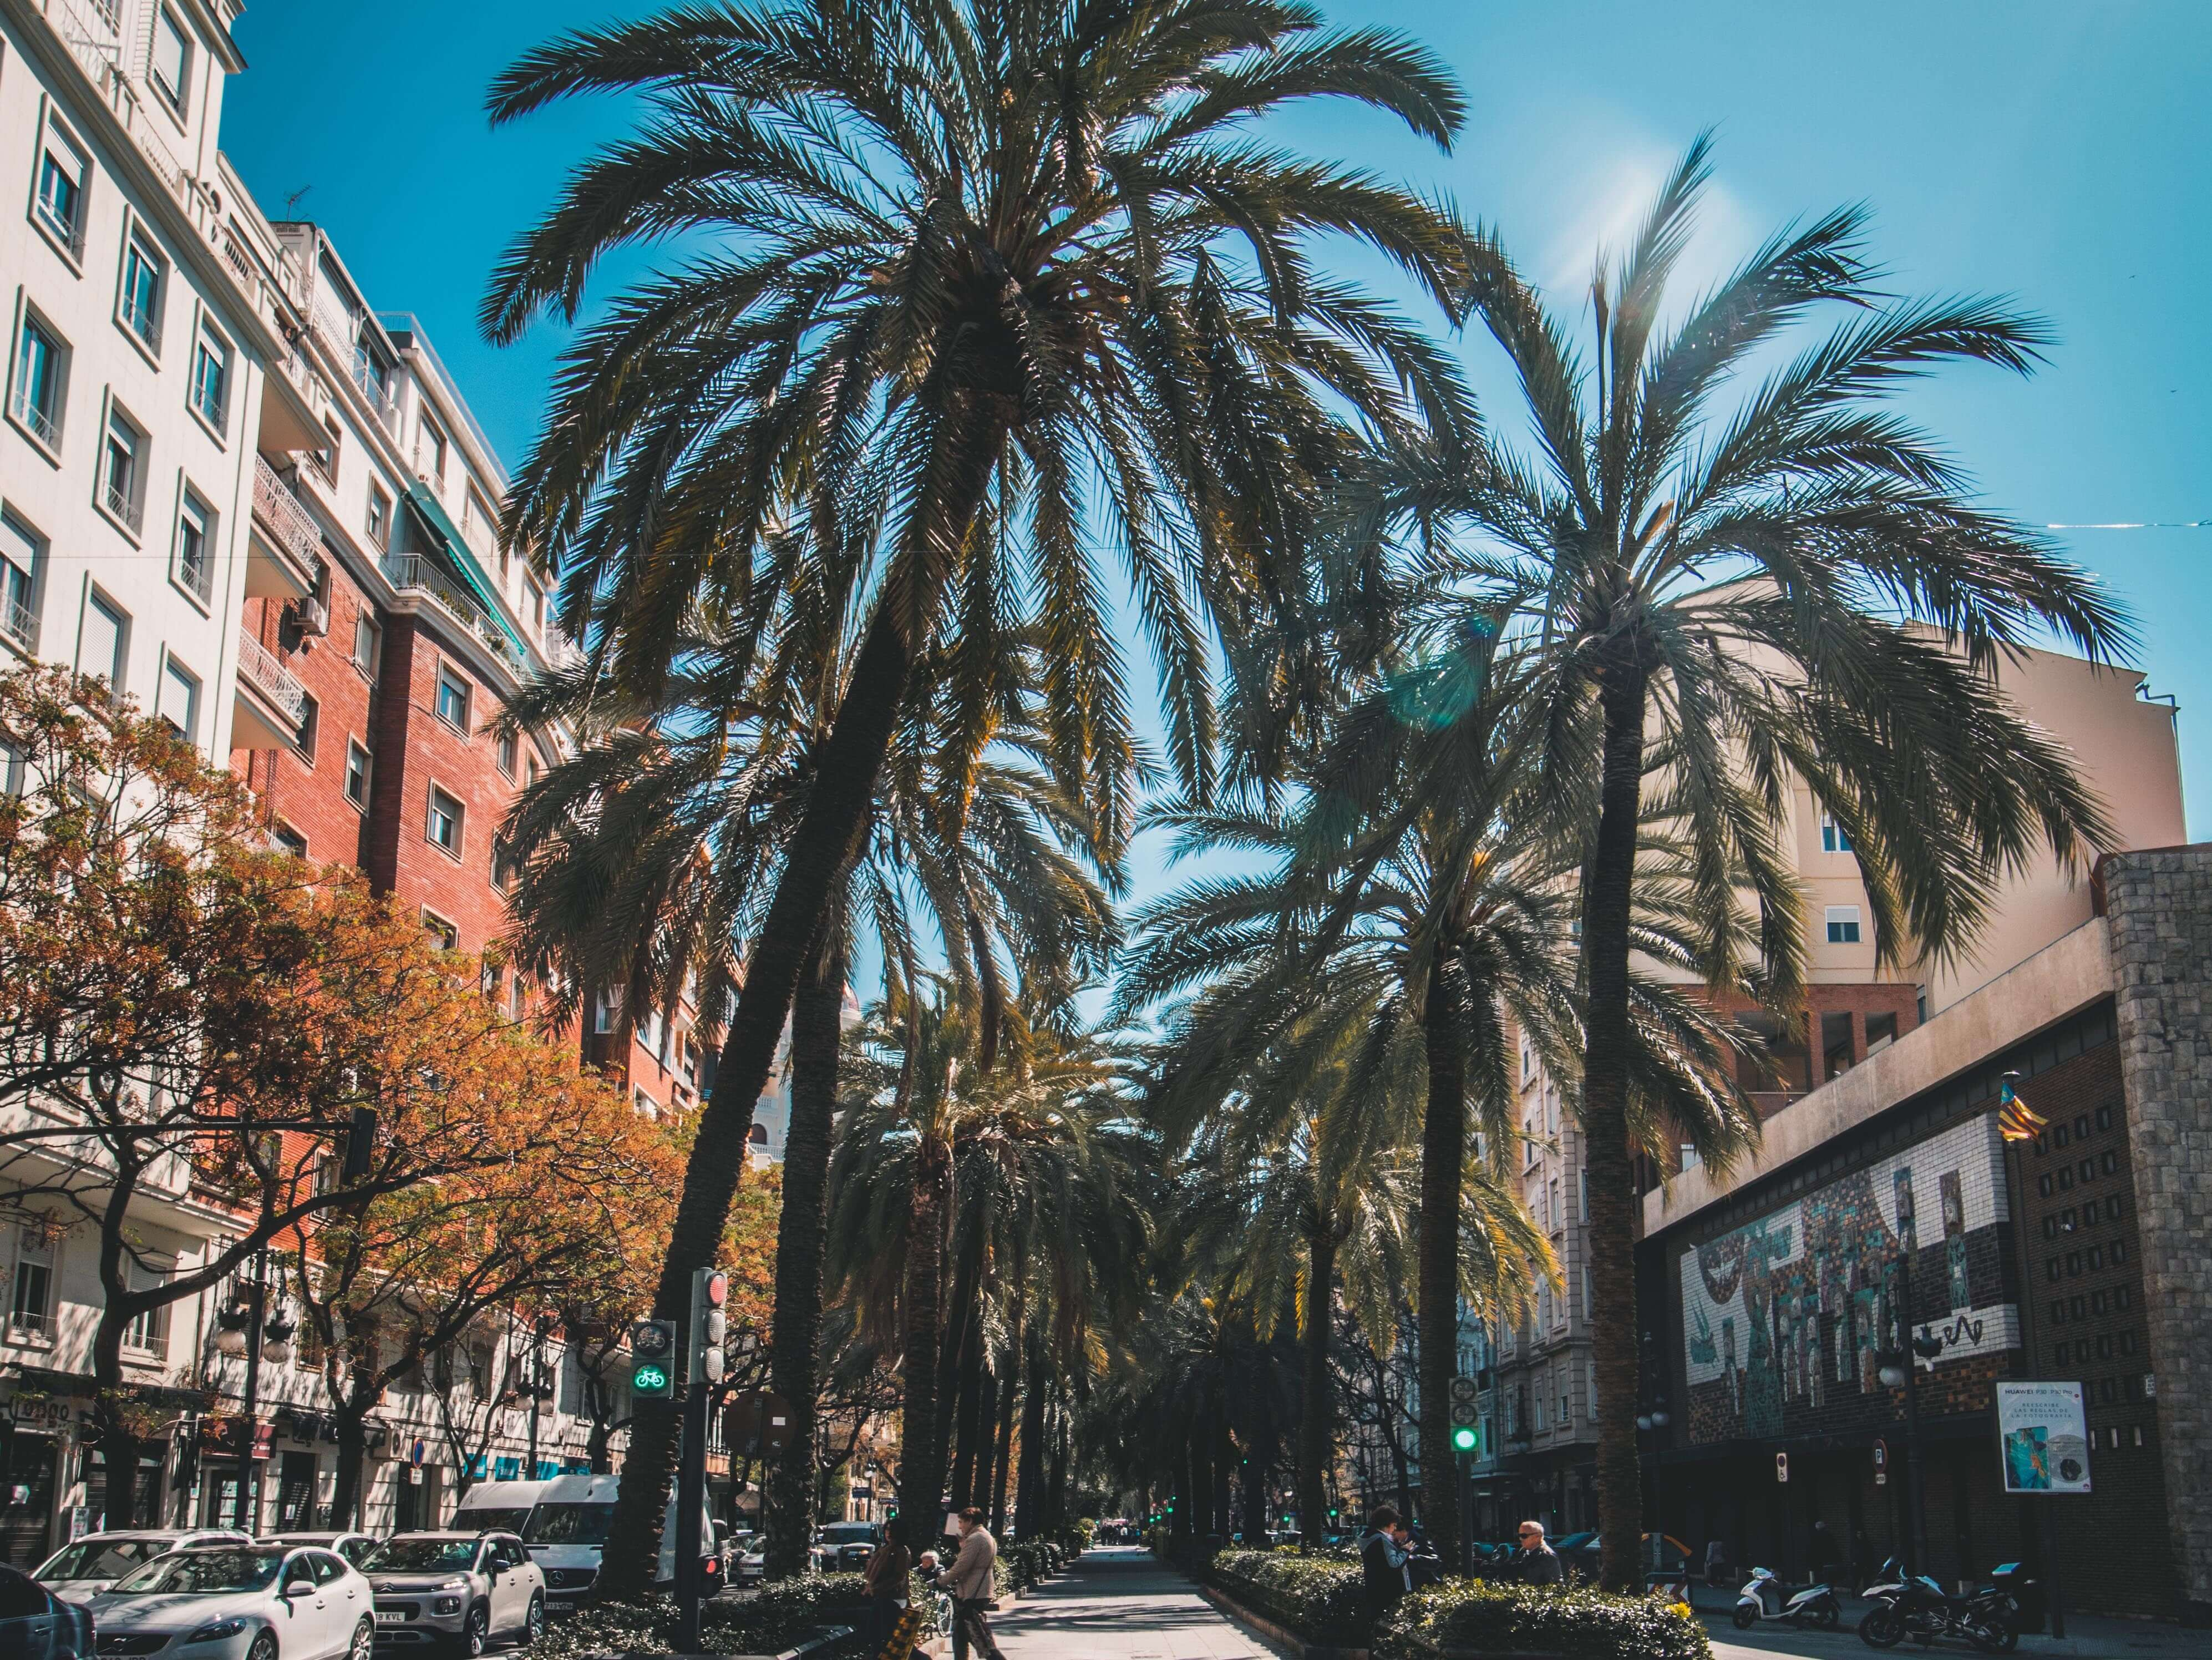 the pros and cons of living in Valencia, Spain include the sunny weather